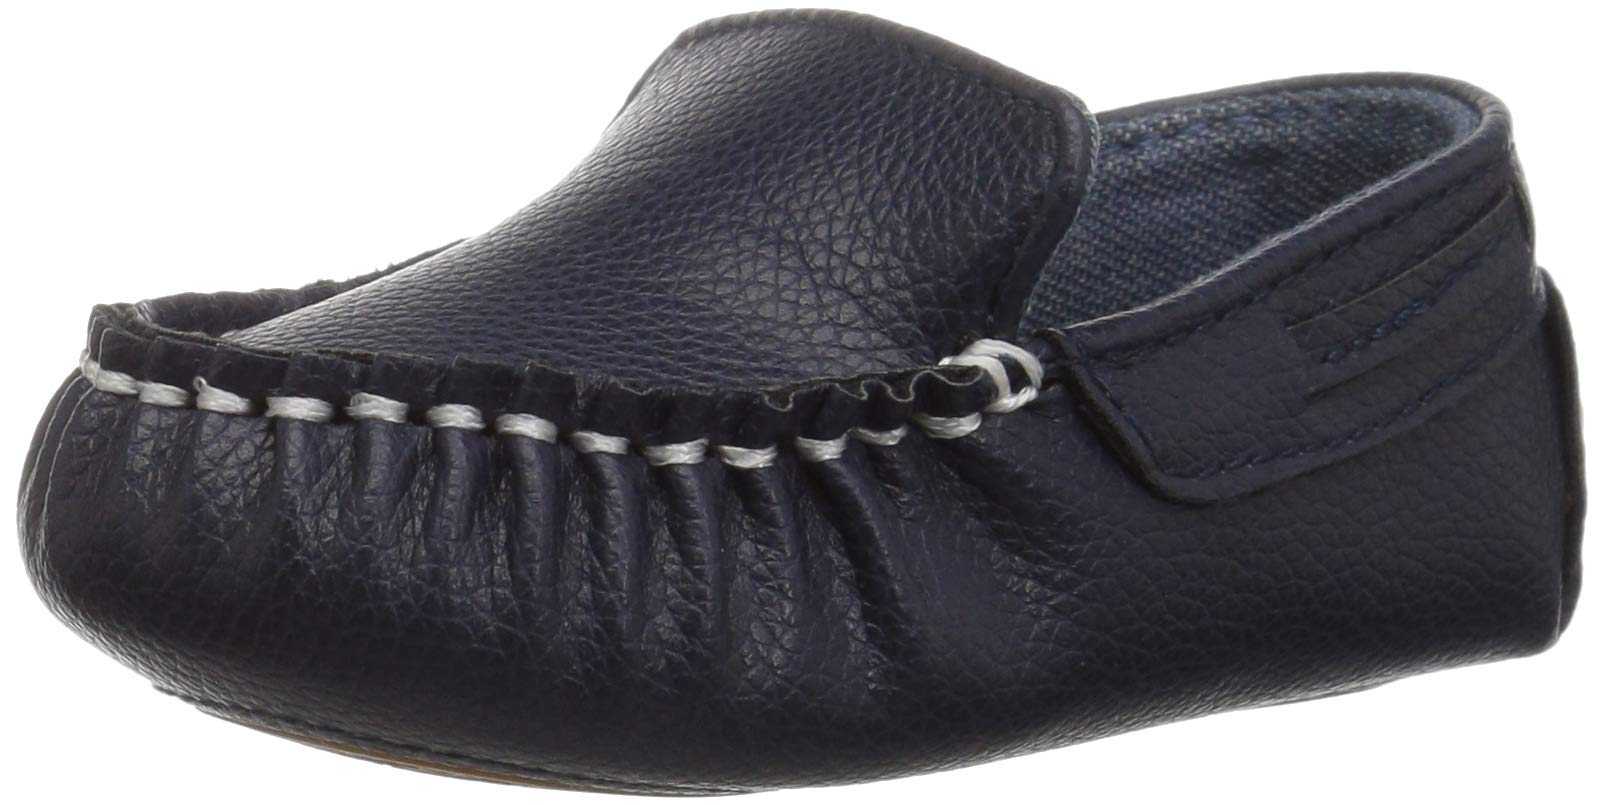 The Children's Place Boys' Moccassin Loafer Moccasin, Tidal, 6-12MONTHS Child US Infant